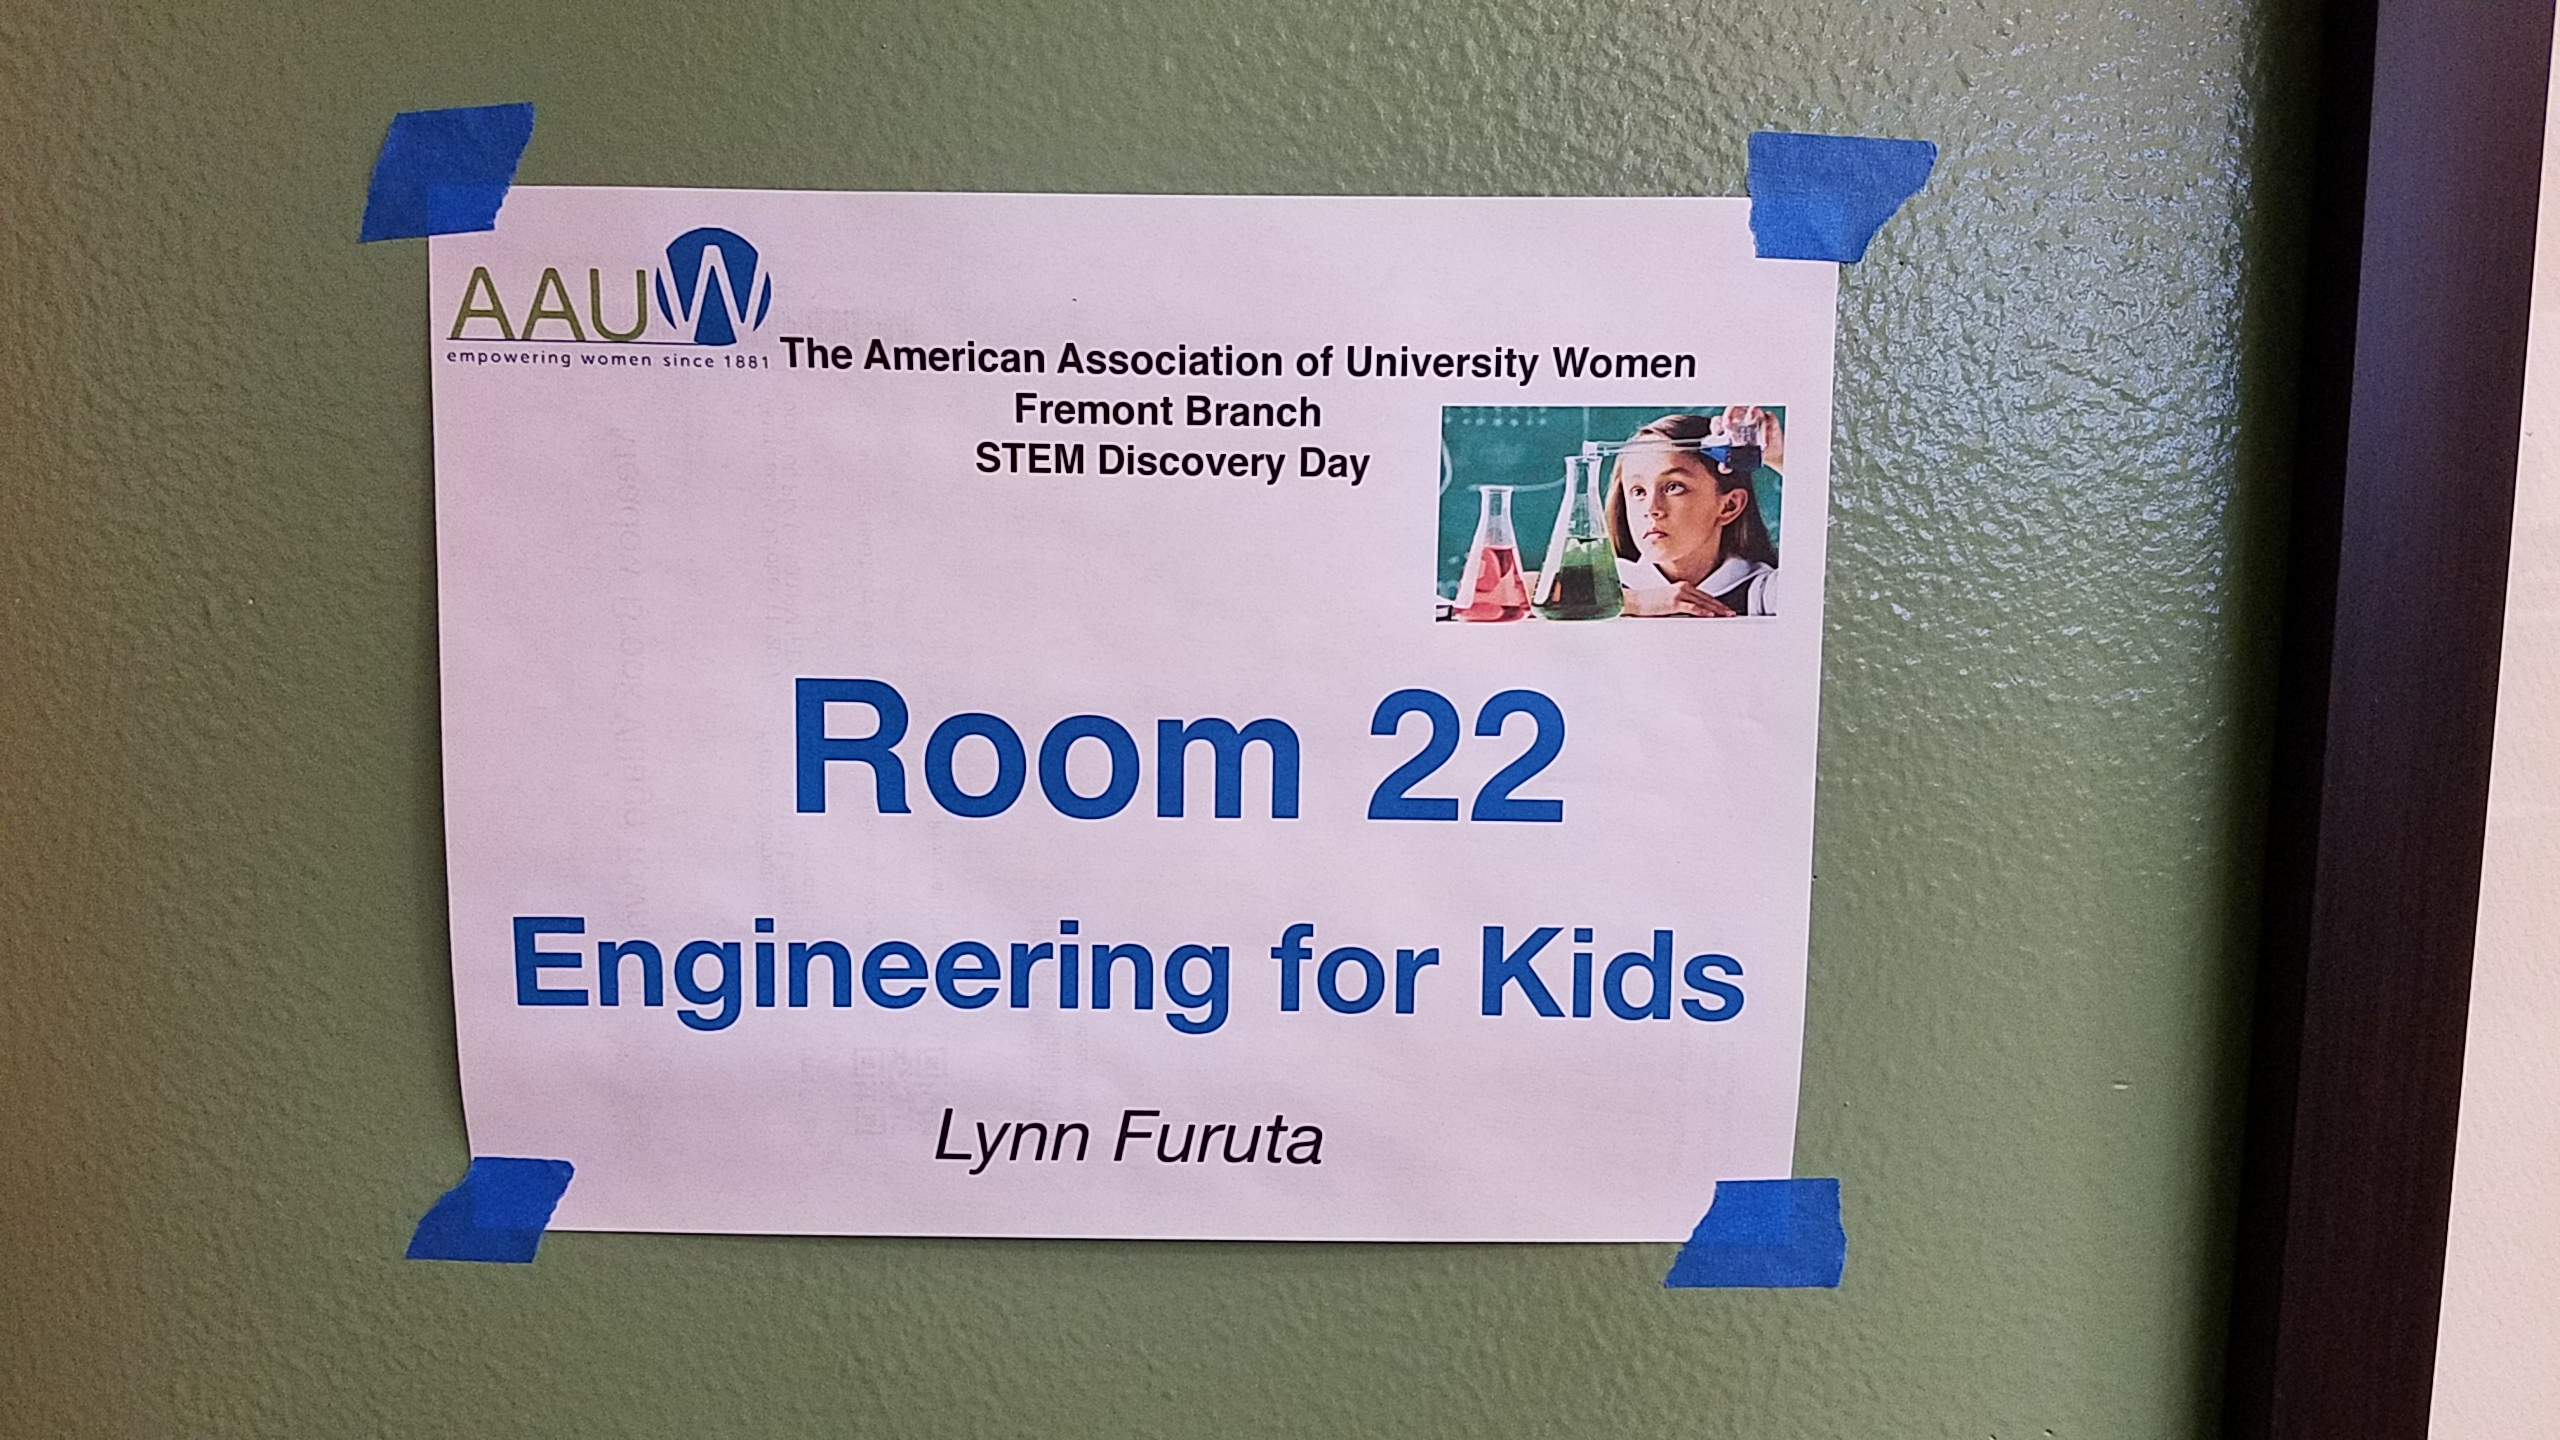 Roomsign